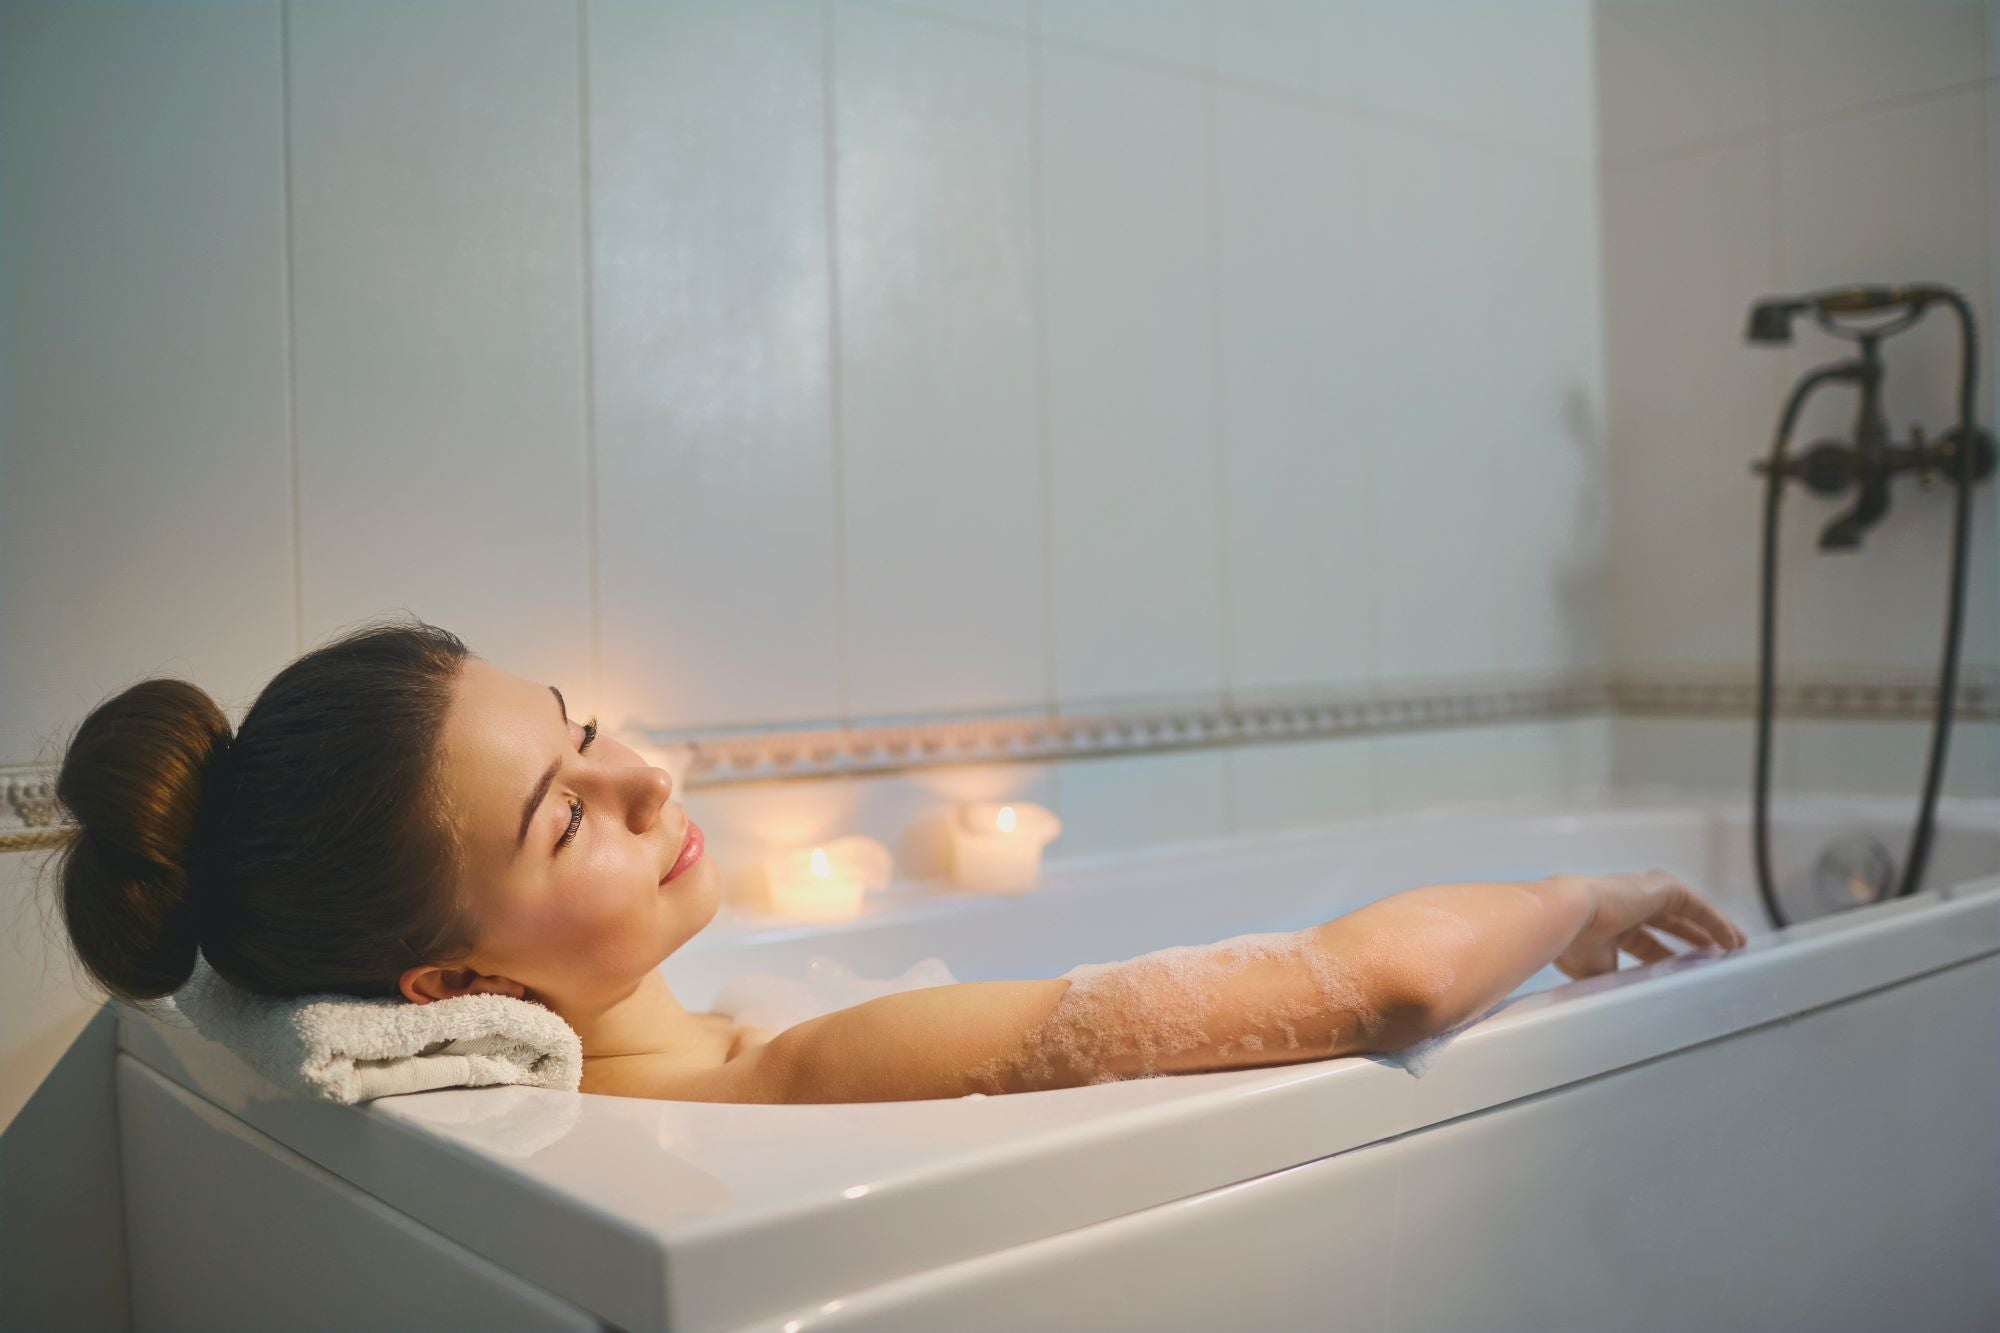 Self care Sunday - 5 essentials for the perfect bath